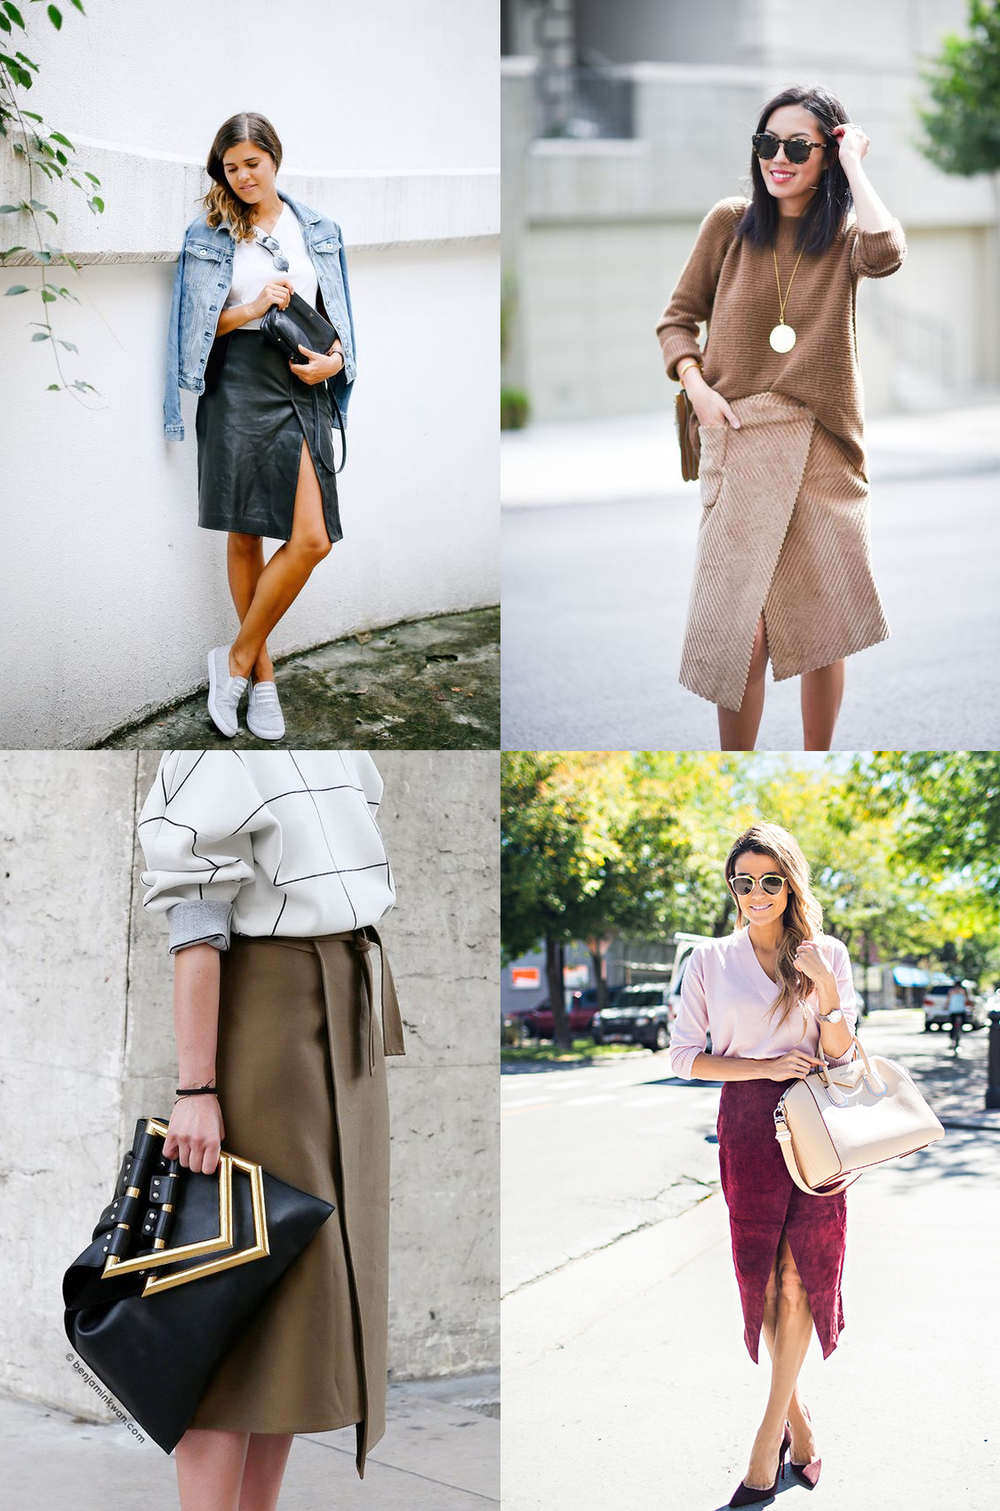 Clockwise from top left: A Pair & A Spare  //  9 to 5 Chic  //  Hello Fashion Blog  //  Snapped